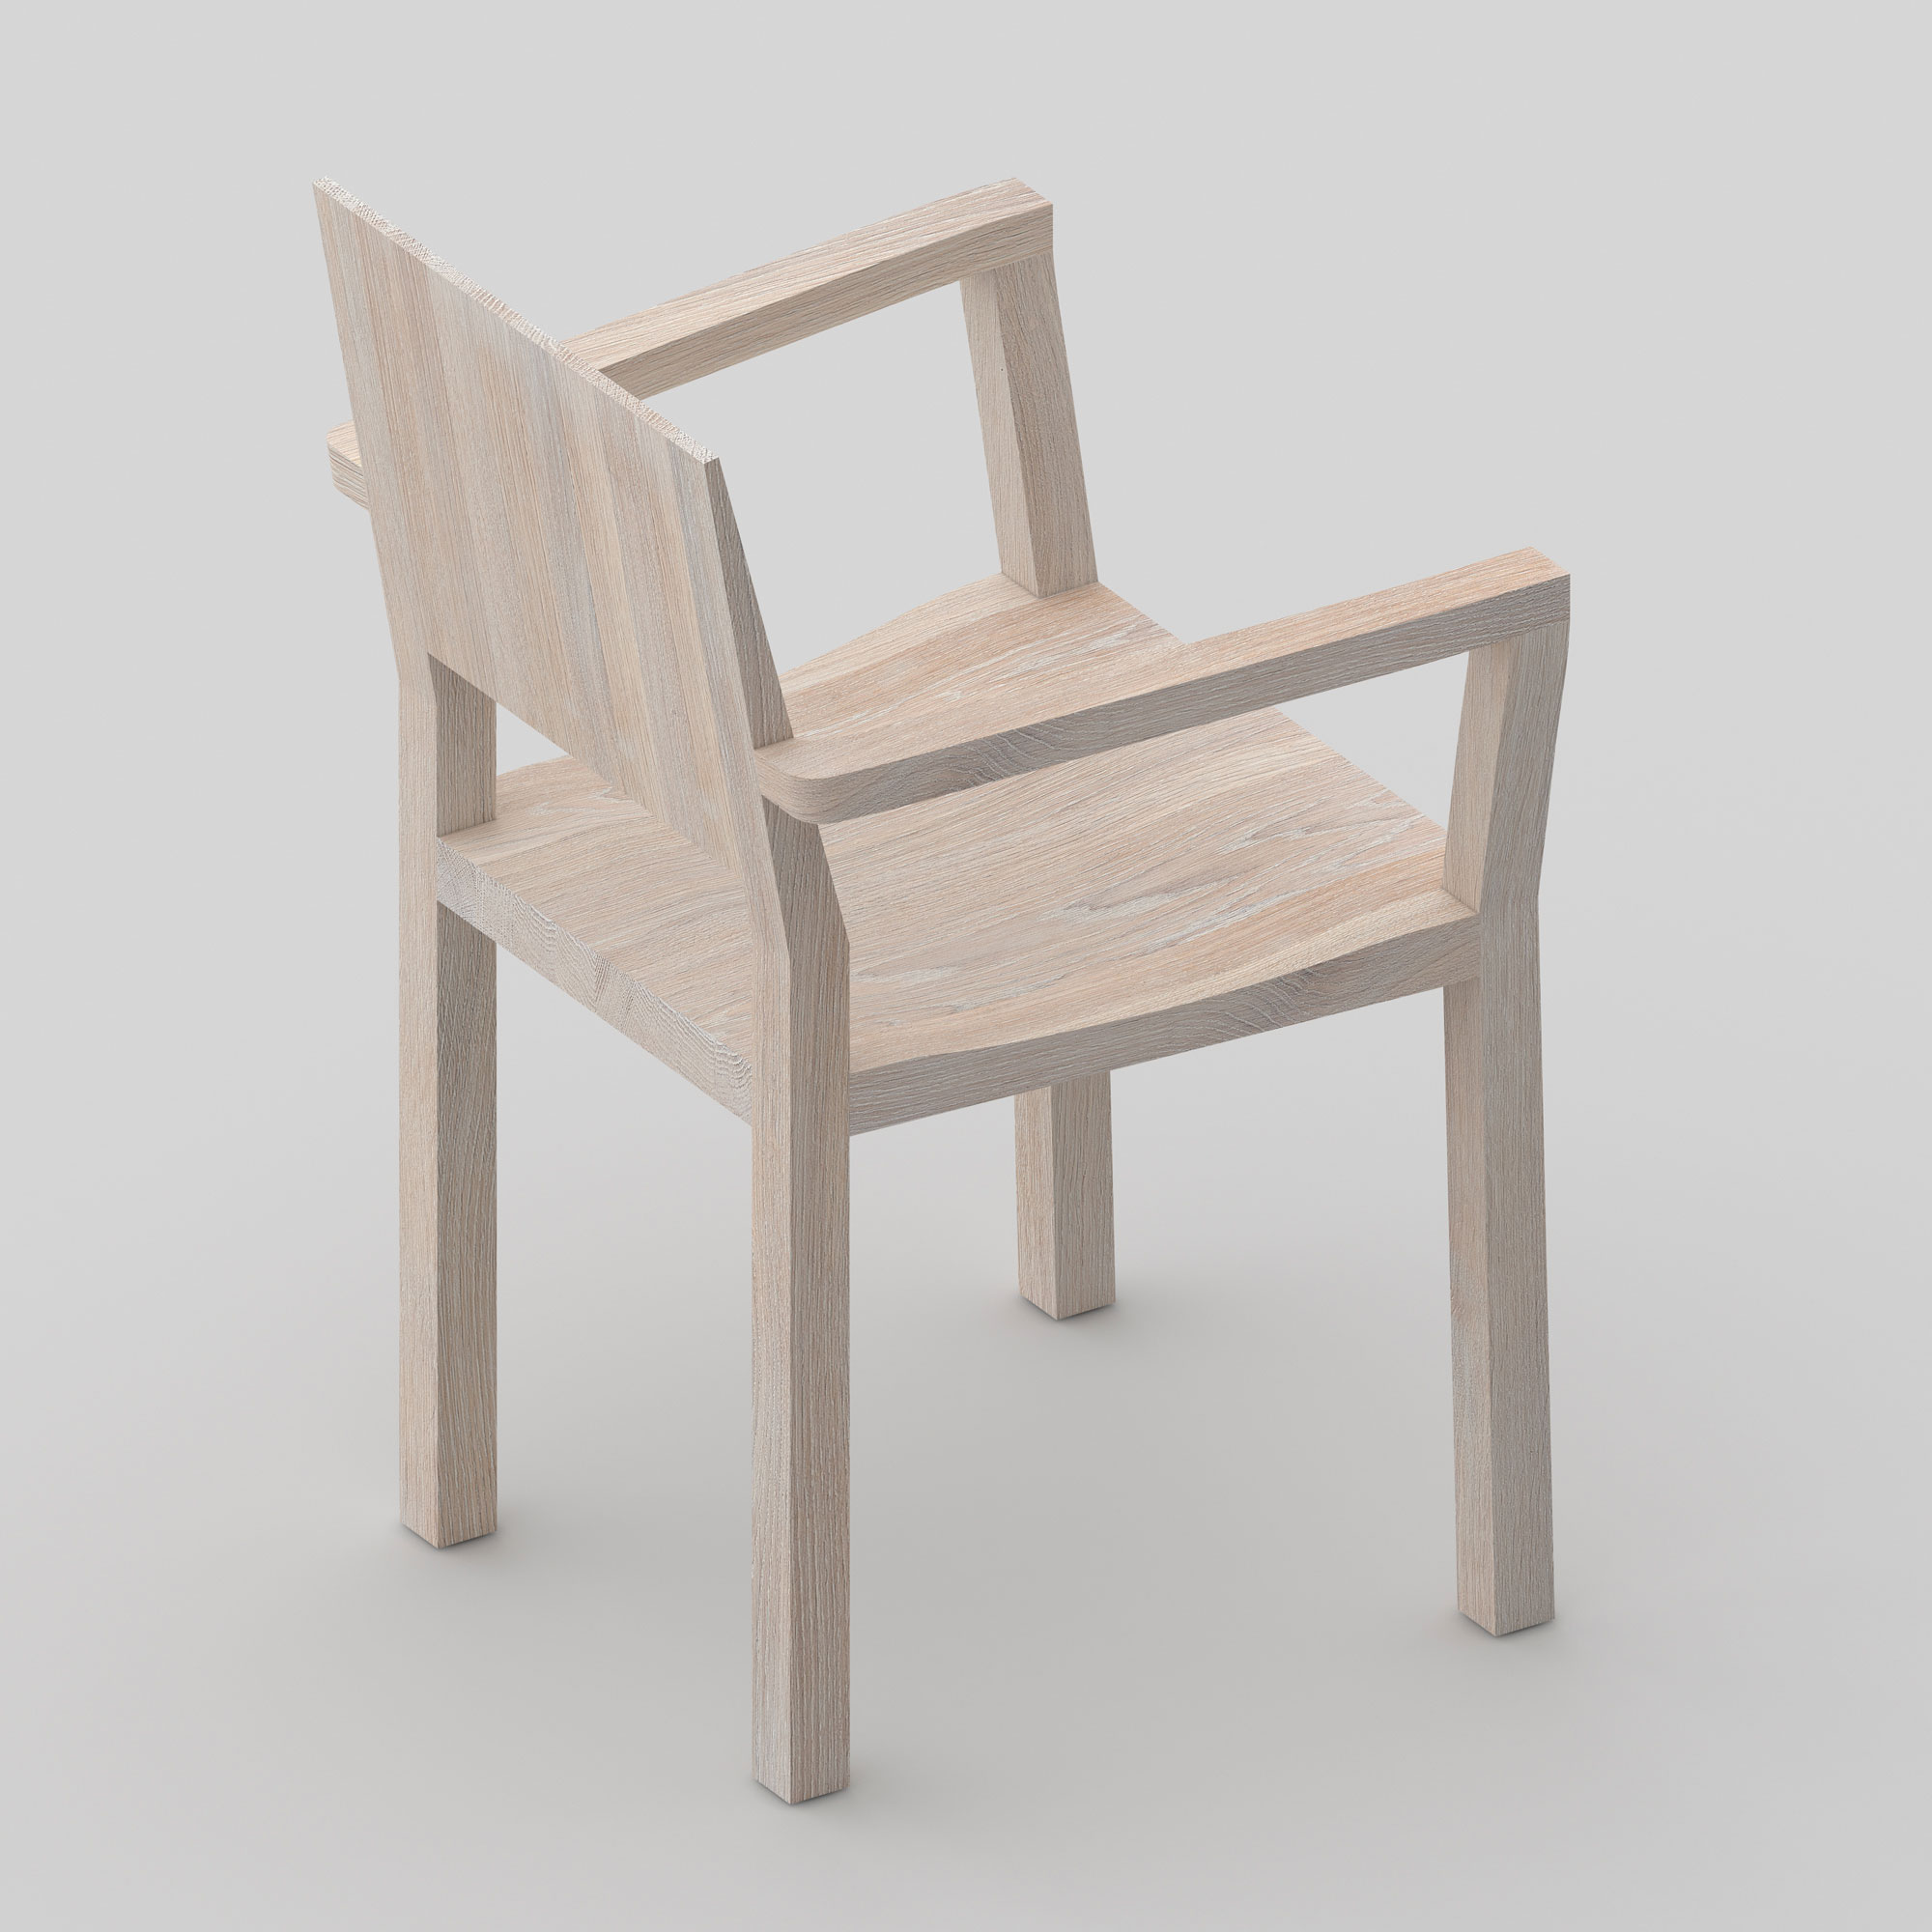 Solid Wood Armchair TAU-A cam3 custom made in solid wood by vitamin design